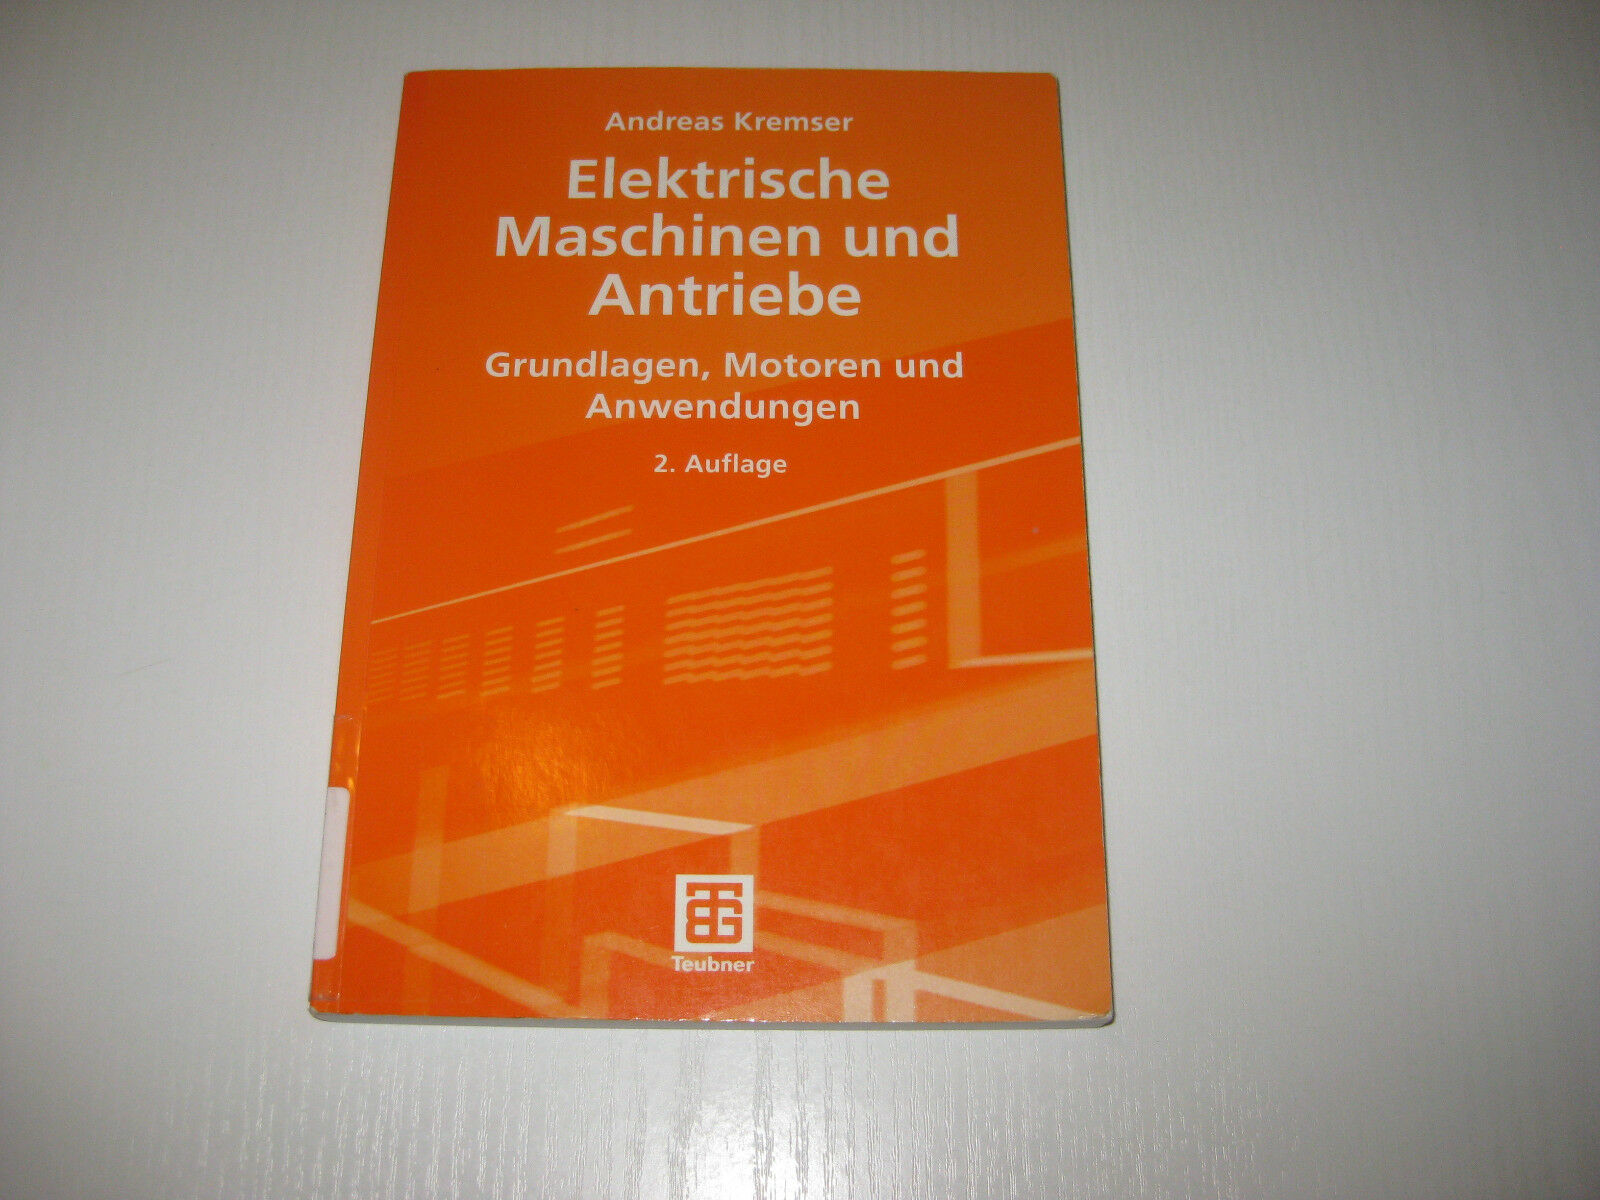 Elektrische Maschinen Meisterprufung Peter Behrends Download Choice ...